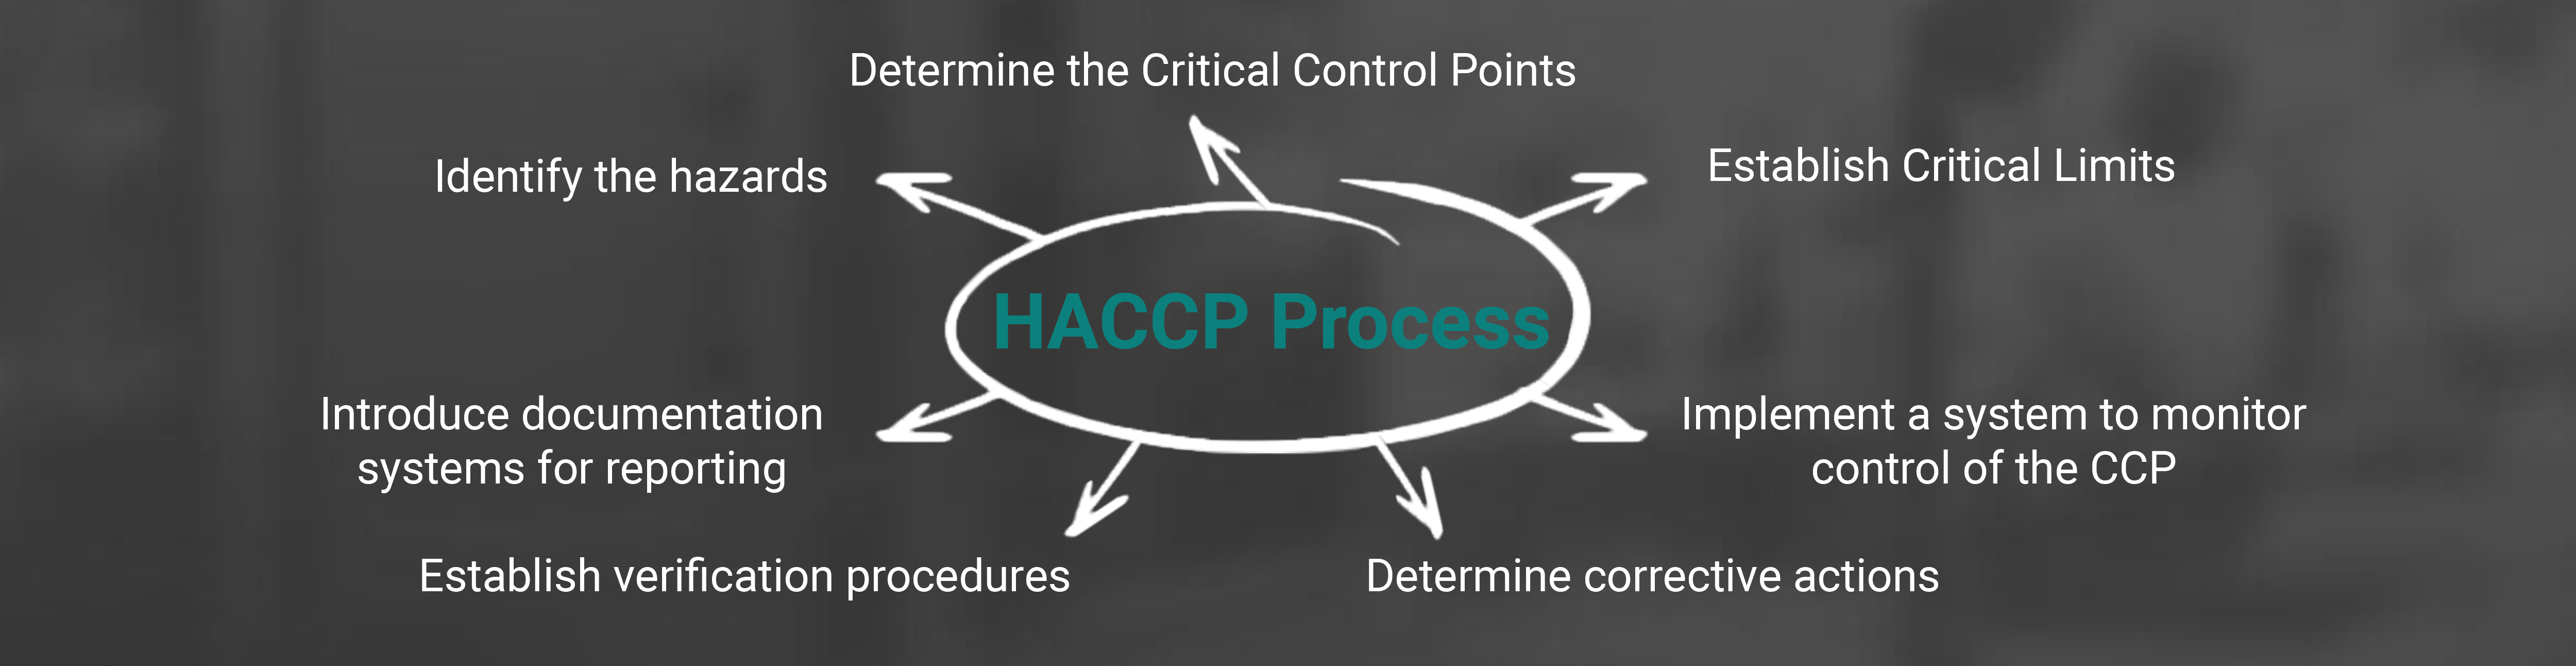 Haccp Plan Template Uk Image collections - Template Design Ideas